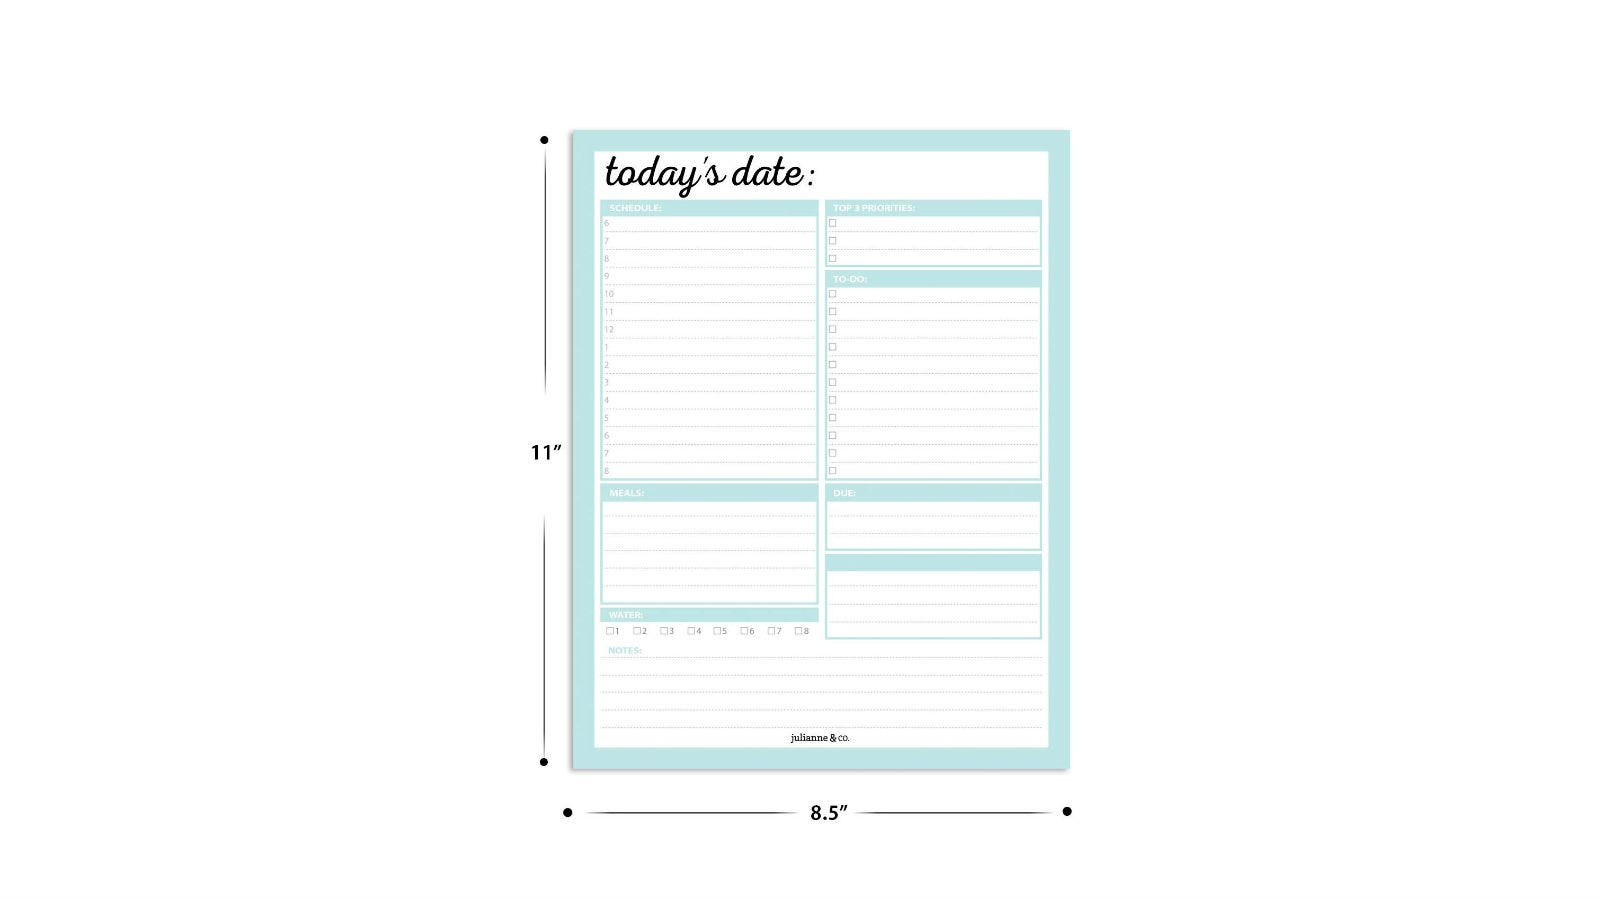 Julianne & Co. Daily To-Do Planner Notepad